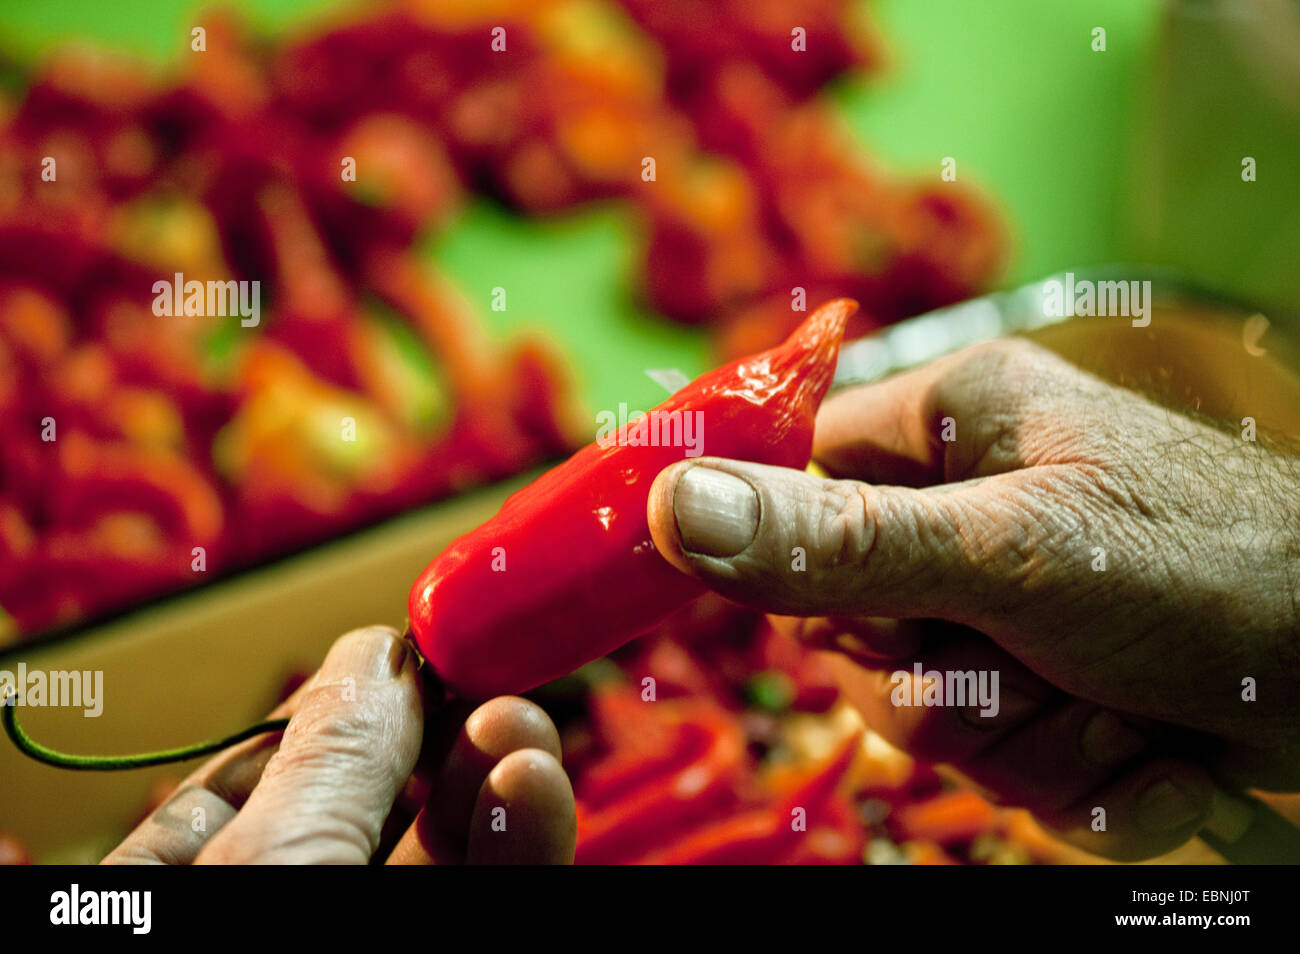 chili pepper, paprika (Capsicum annuum), man slicing red chili peppers with a cutter - Stock Image